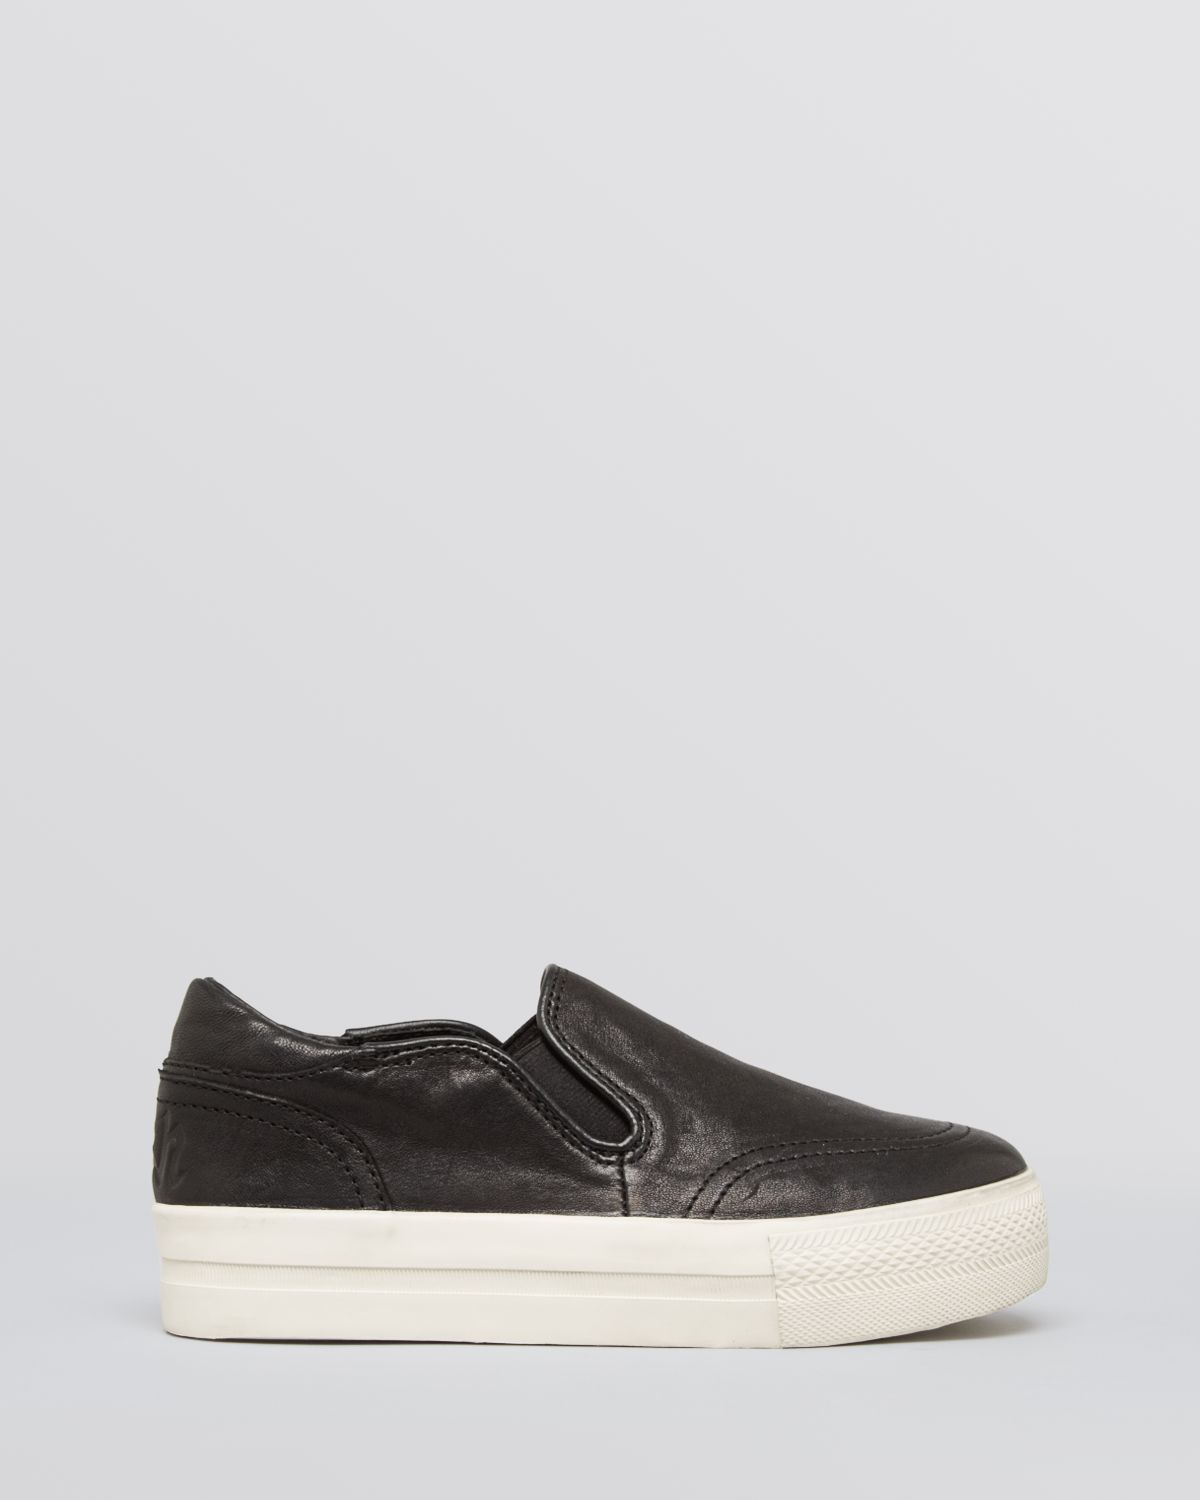 Ash Leather Slip On Sneakers - Jungle in Black